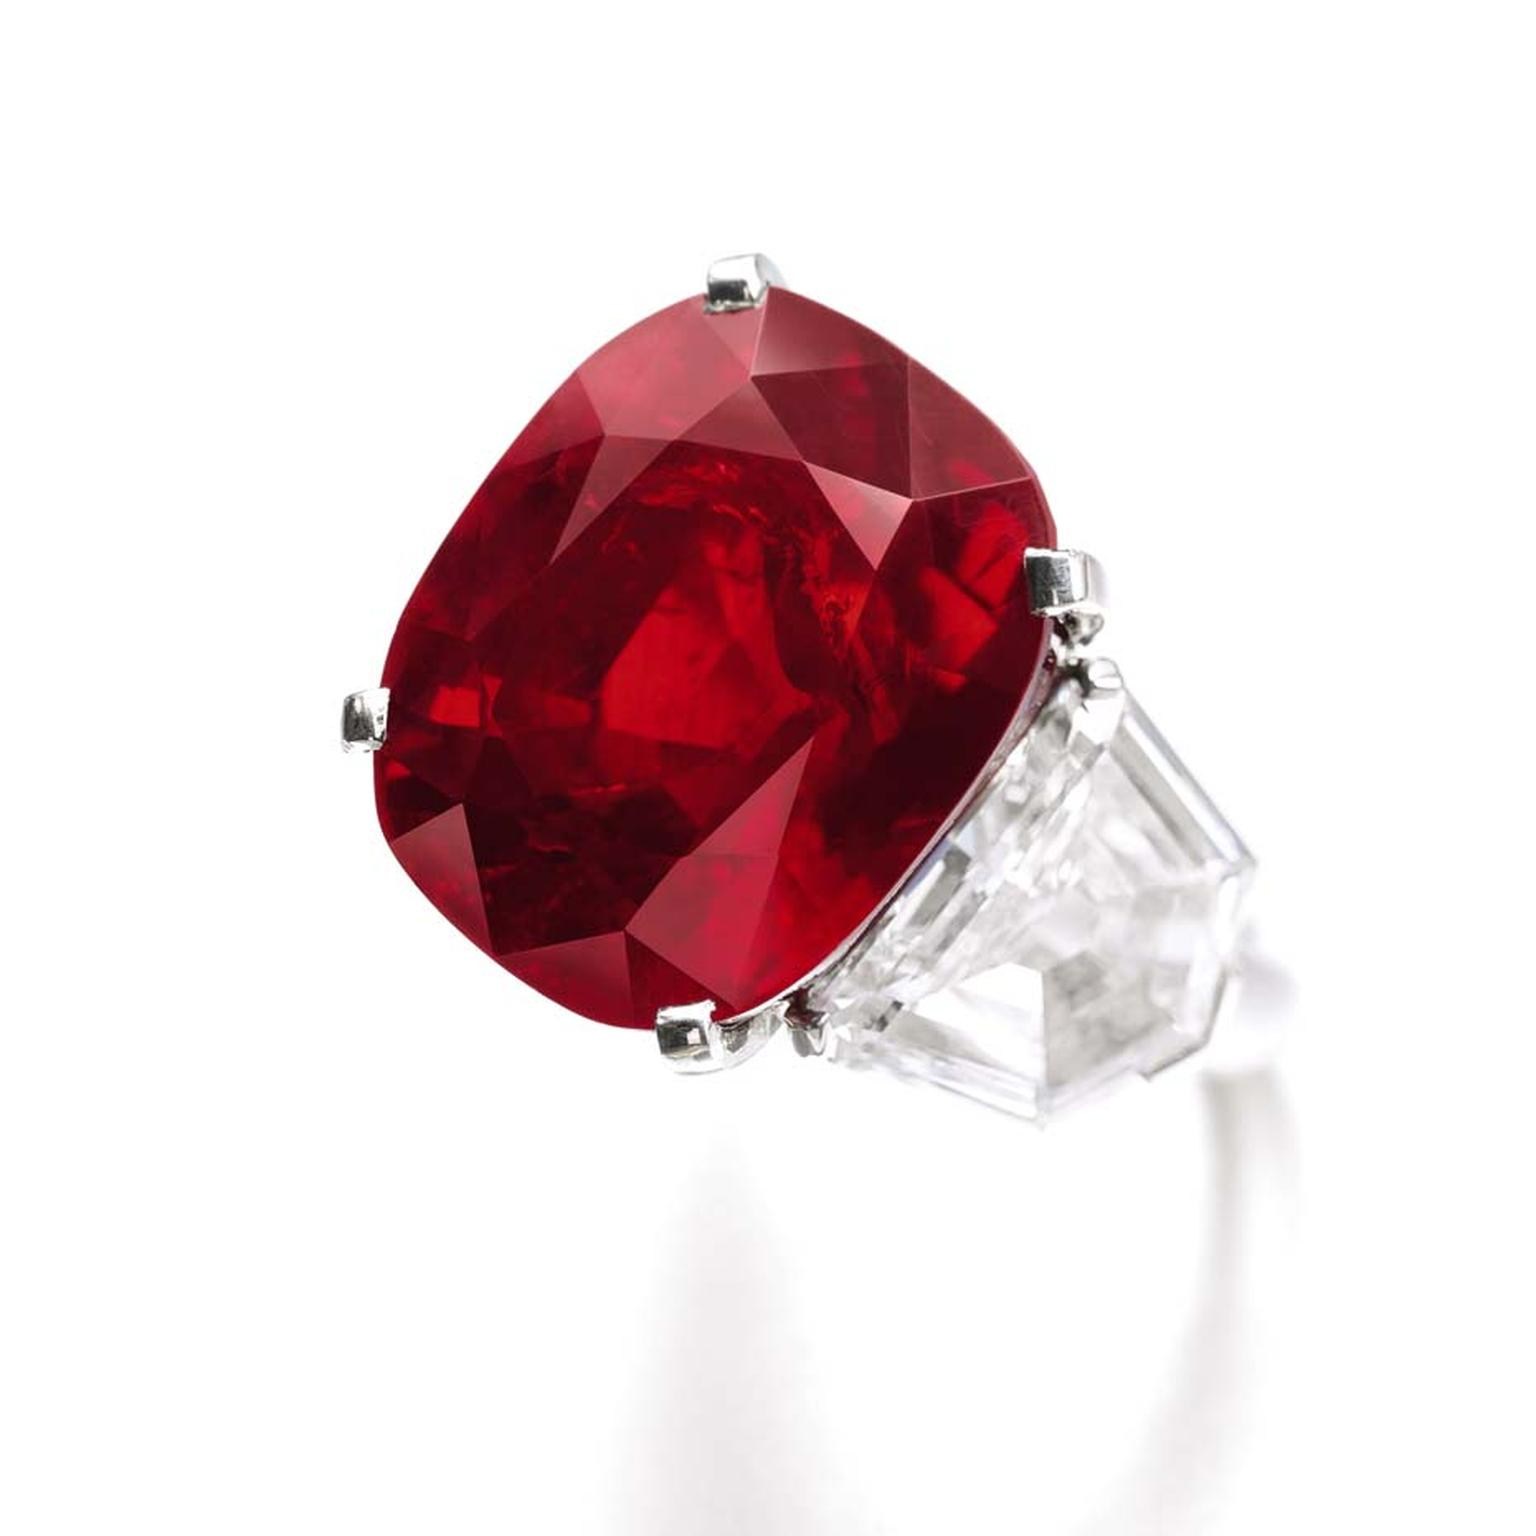 Named after a poem written by the Sufi poet Rumi, The Sunrise Ruby, an extraordinary cushion-shaped 25.59ct Burmese ruby, was mounted as a ring by Cartier. With a pre-sale estimate of US$12-18 million, the 25.59ct cushion-cut ruby should easily surpass th